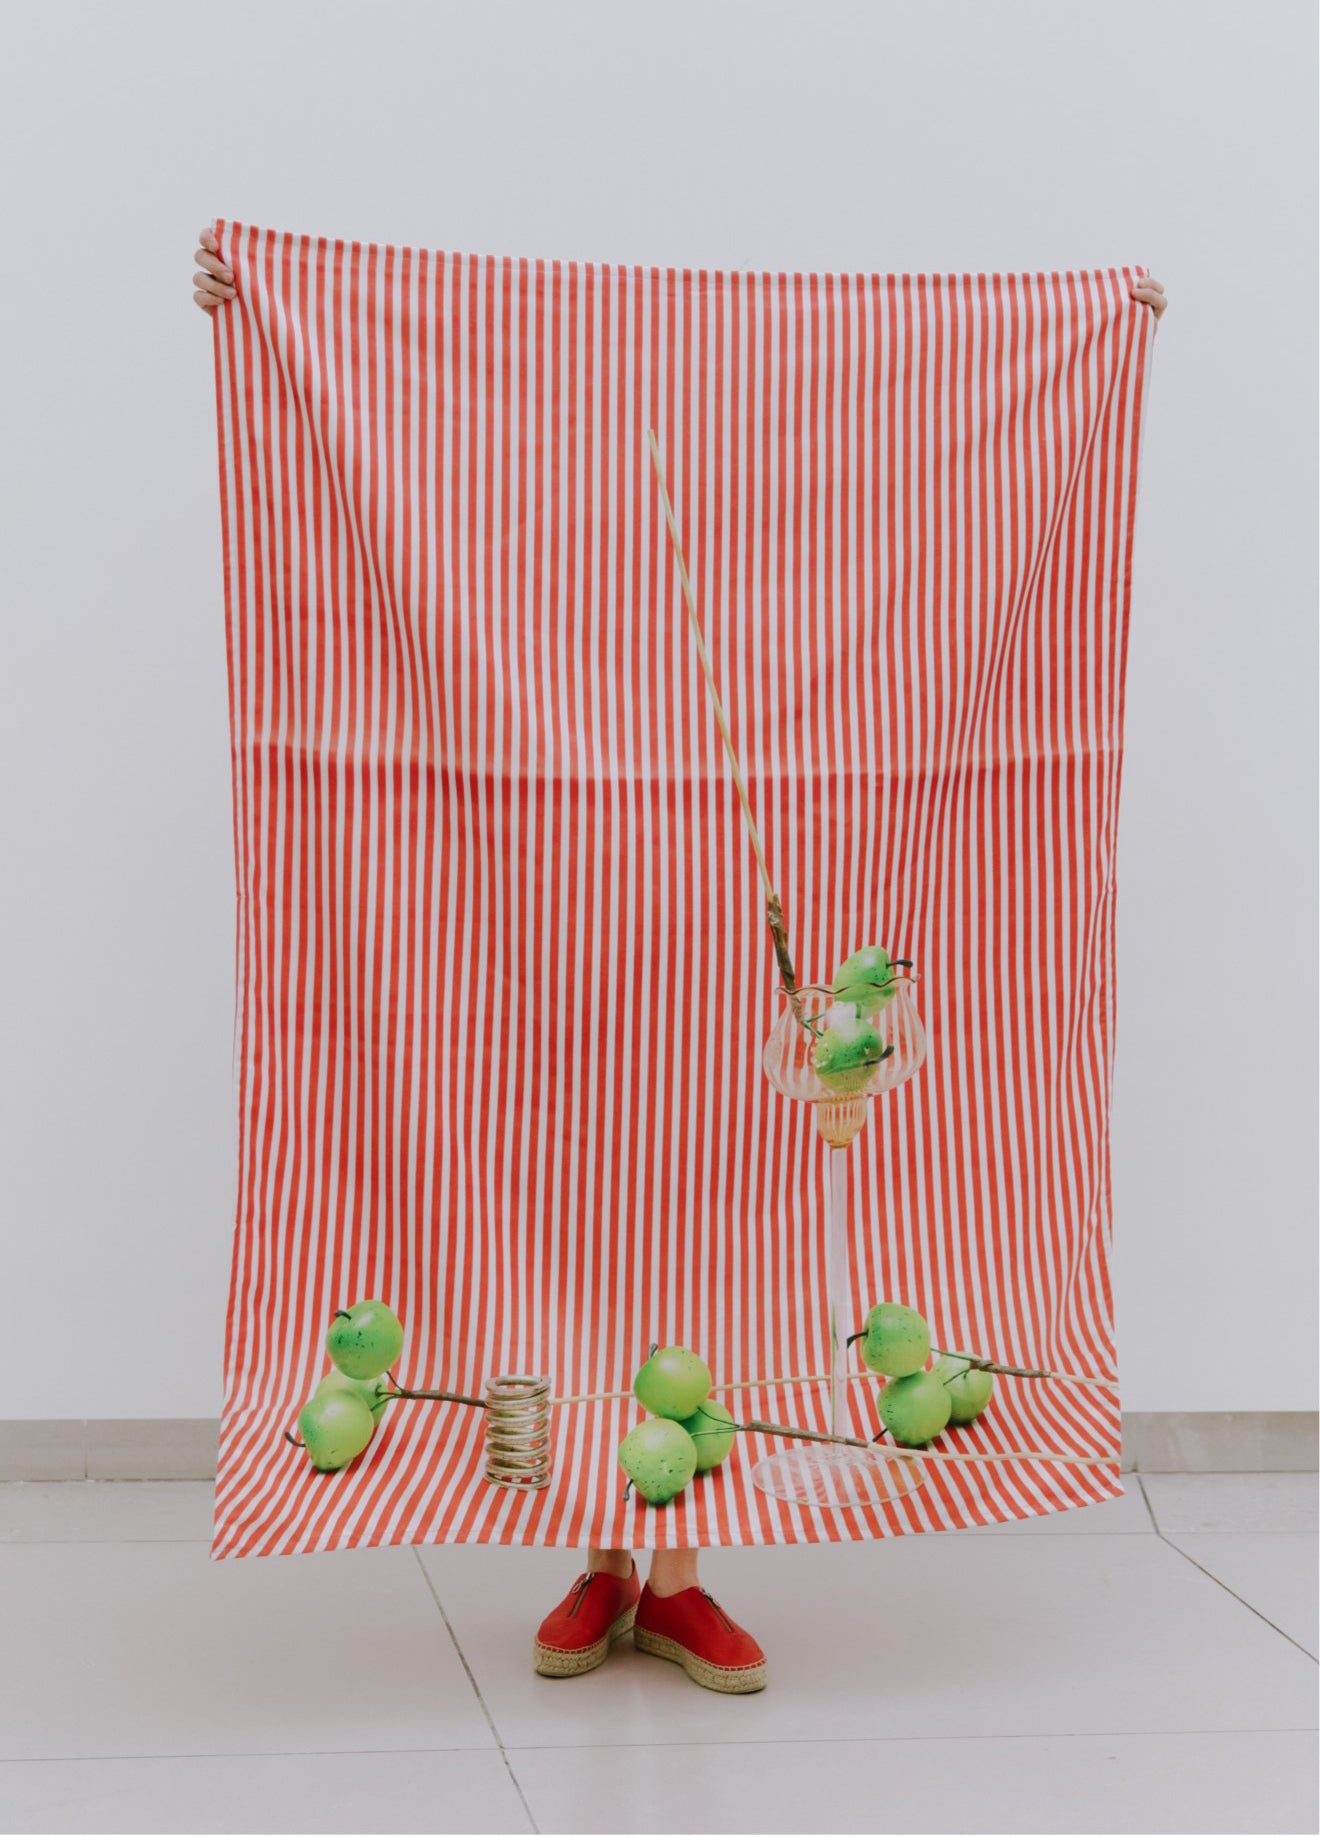 Annette Kelm | Apples | Towel